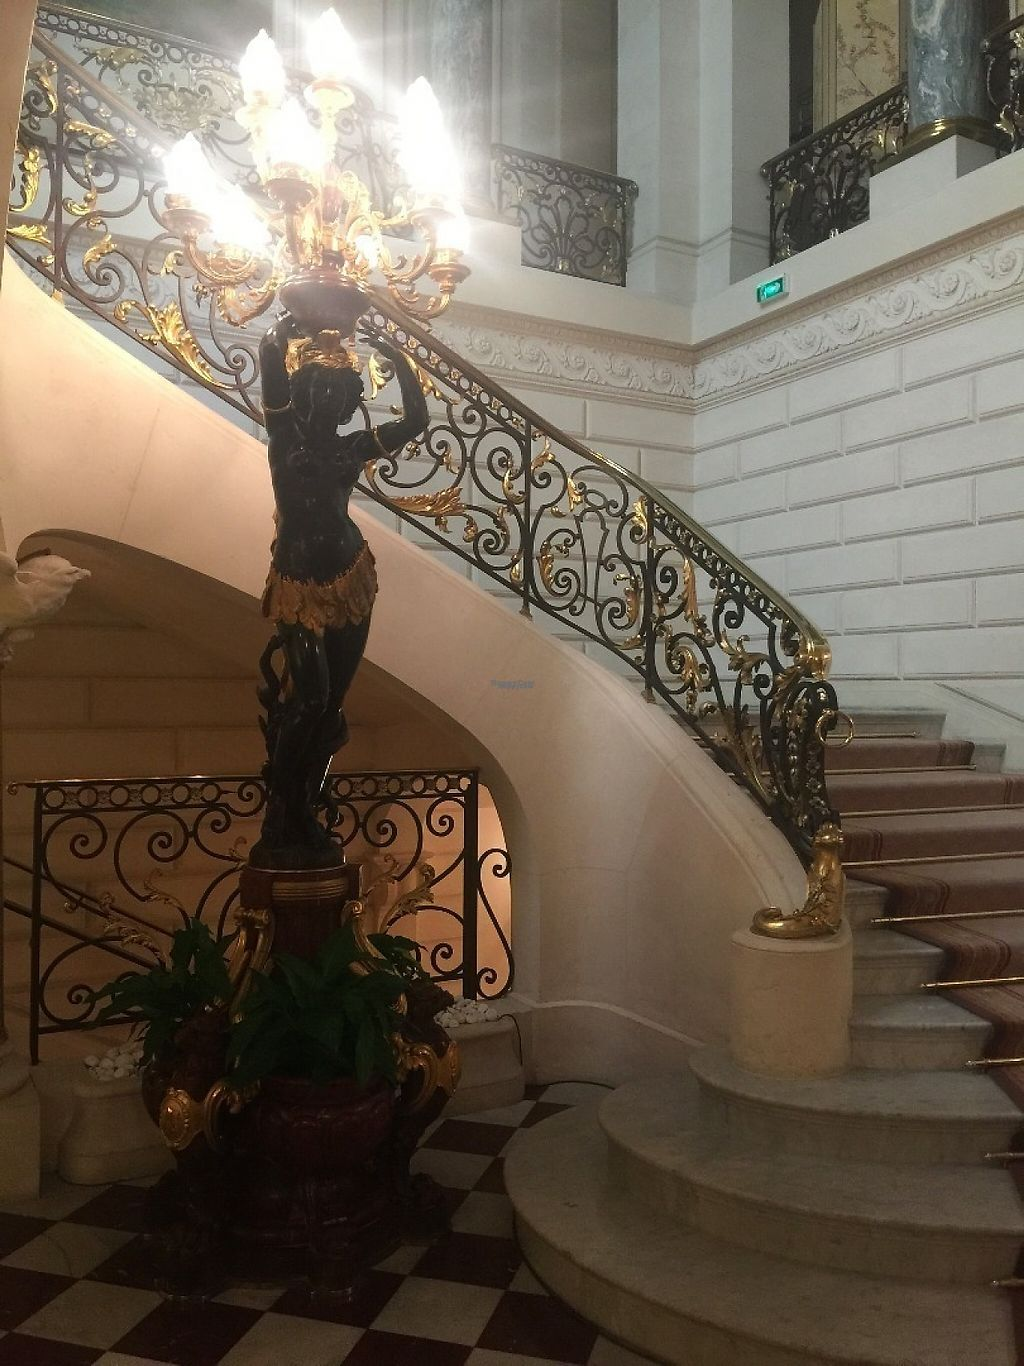 """Photo of Shangri-La Hotel - lounge  by <a href=""""/members/profile/Anne%20VDH"""">Anne VDH</a> <br/>Vegan friendly luxury hotel and restaurant in Paris. Shangri-La  <br/> January 16, 2017  - <a href='/contact/abuse/image/64090/212360'>Report</a>"""